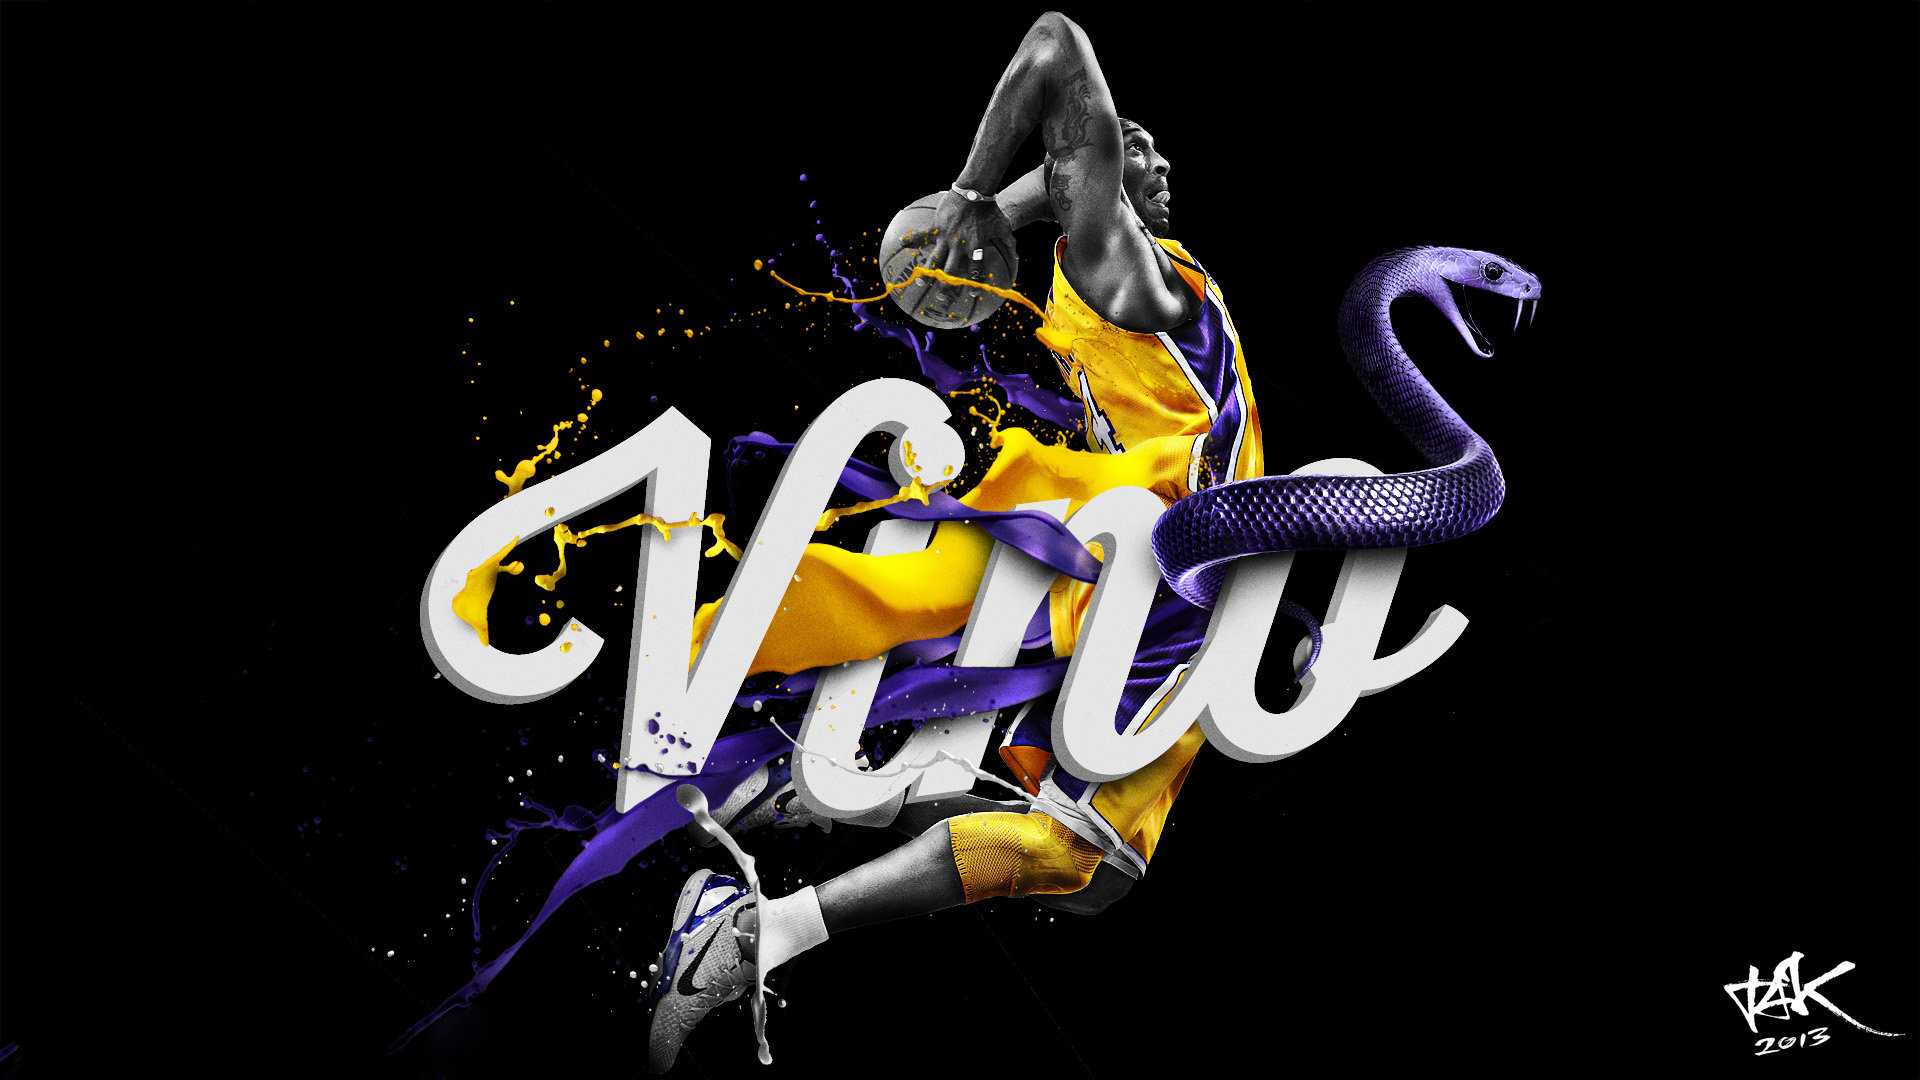 Download full hd 1920x1080 Kobe Bryant computer wallpaper ID:162368 for free